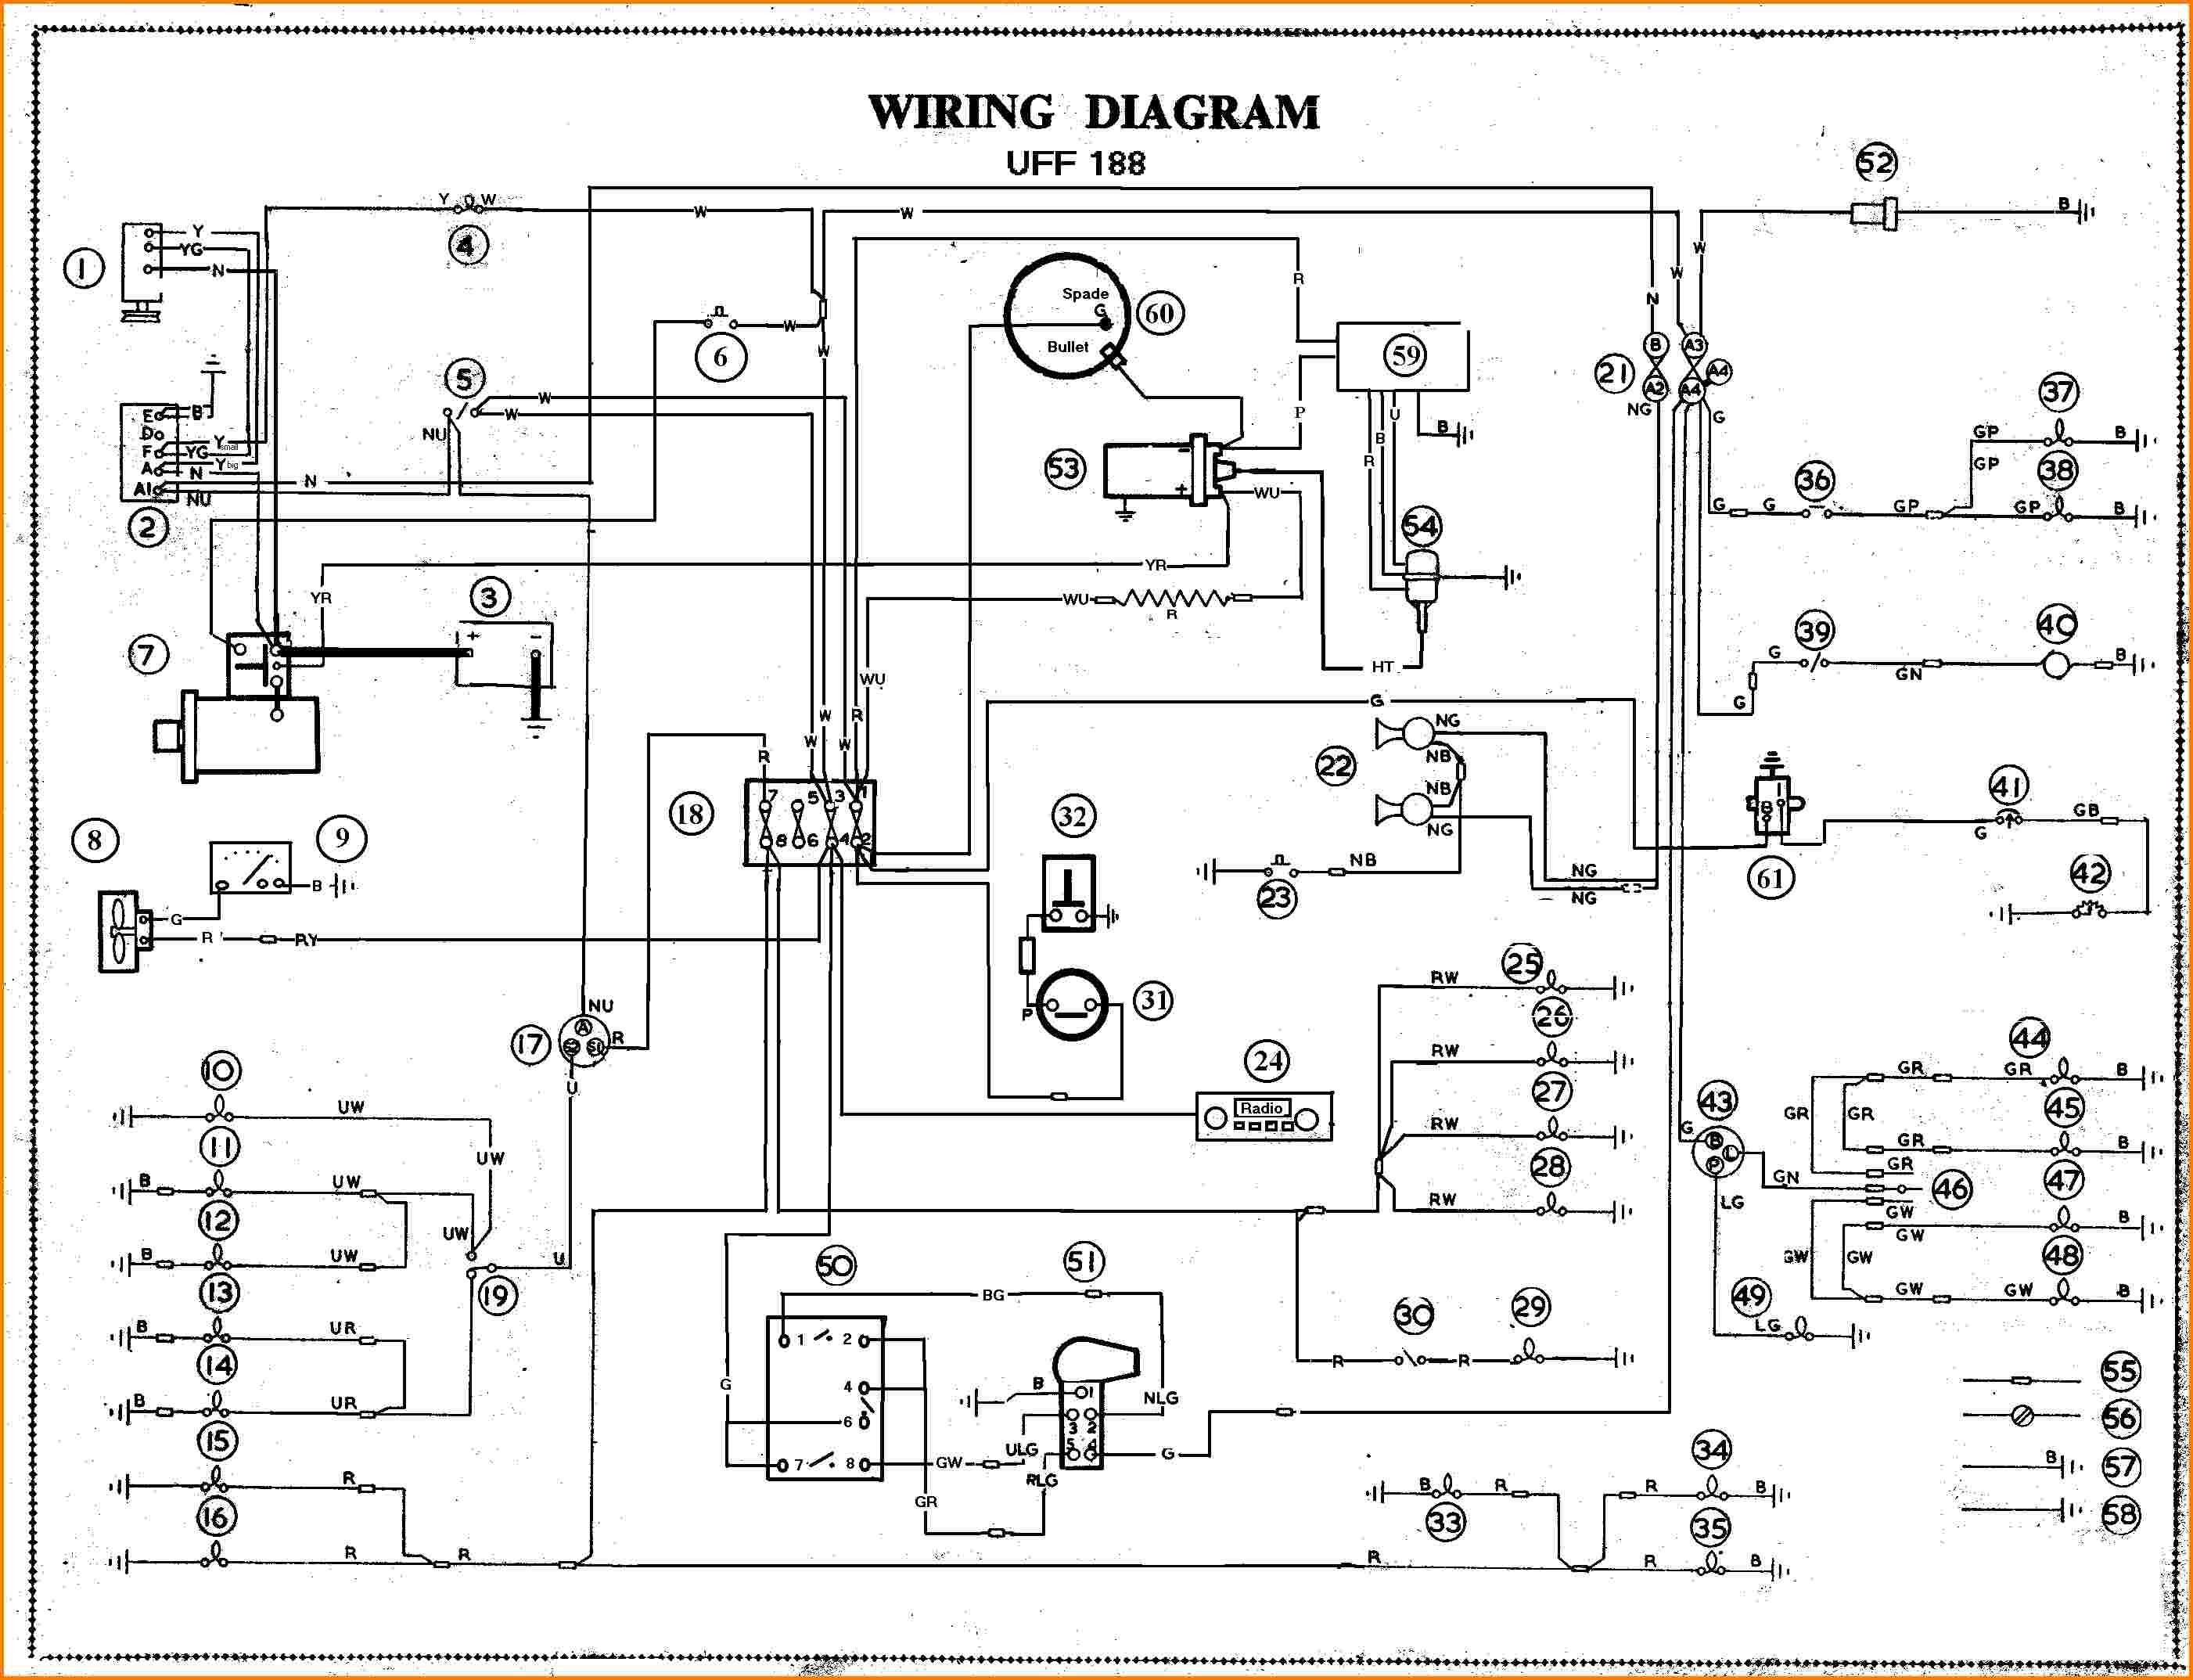 wiring diagram in cars auto electrical wiring diagram u2022 rh focusnews co Automatic Transmission Wiring Diagram for 1997 GMC Jimmy Wiring Diagram for 1996 GMC Pickup Truck